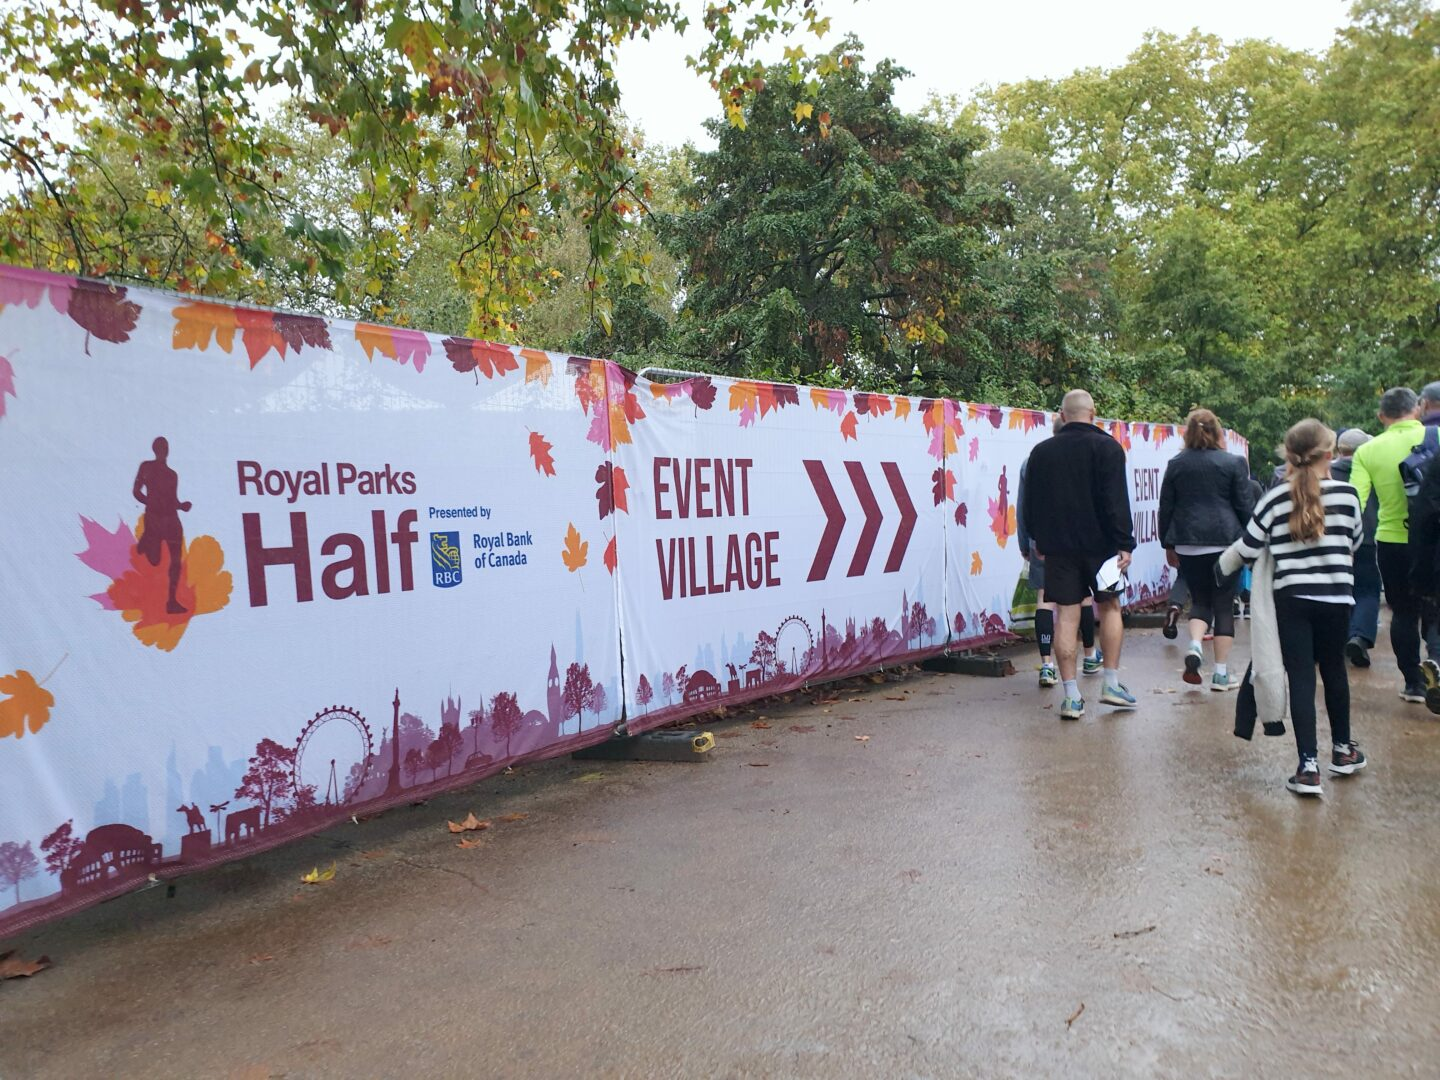 Royal Parks Half Race Village branding